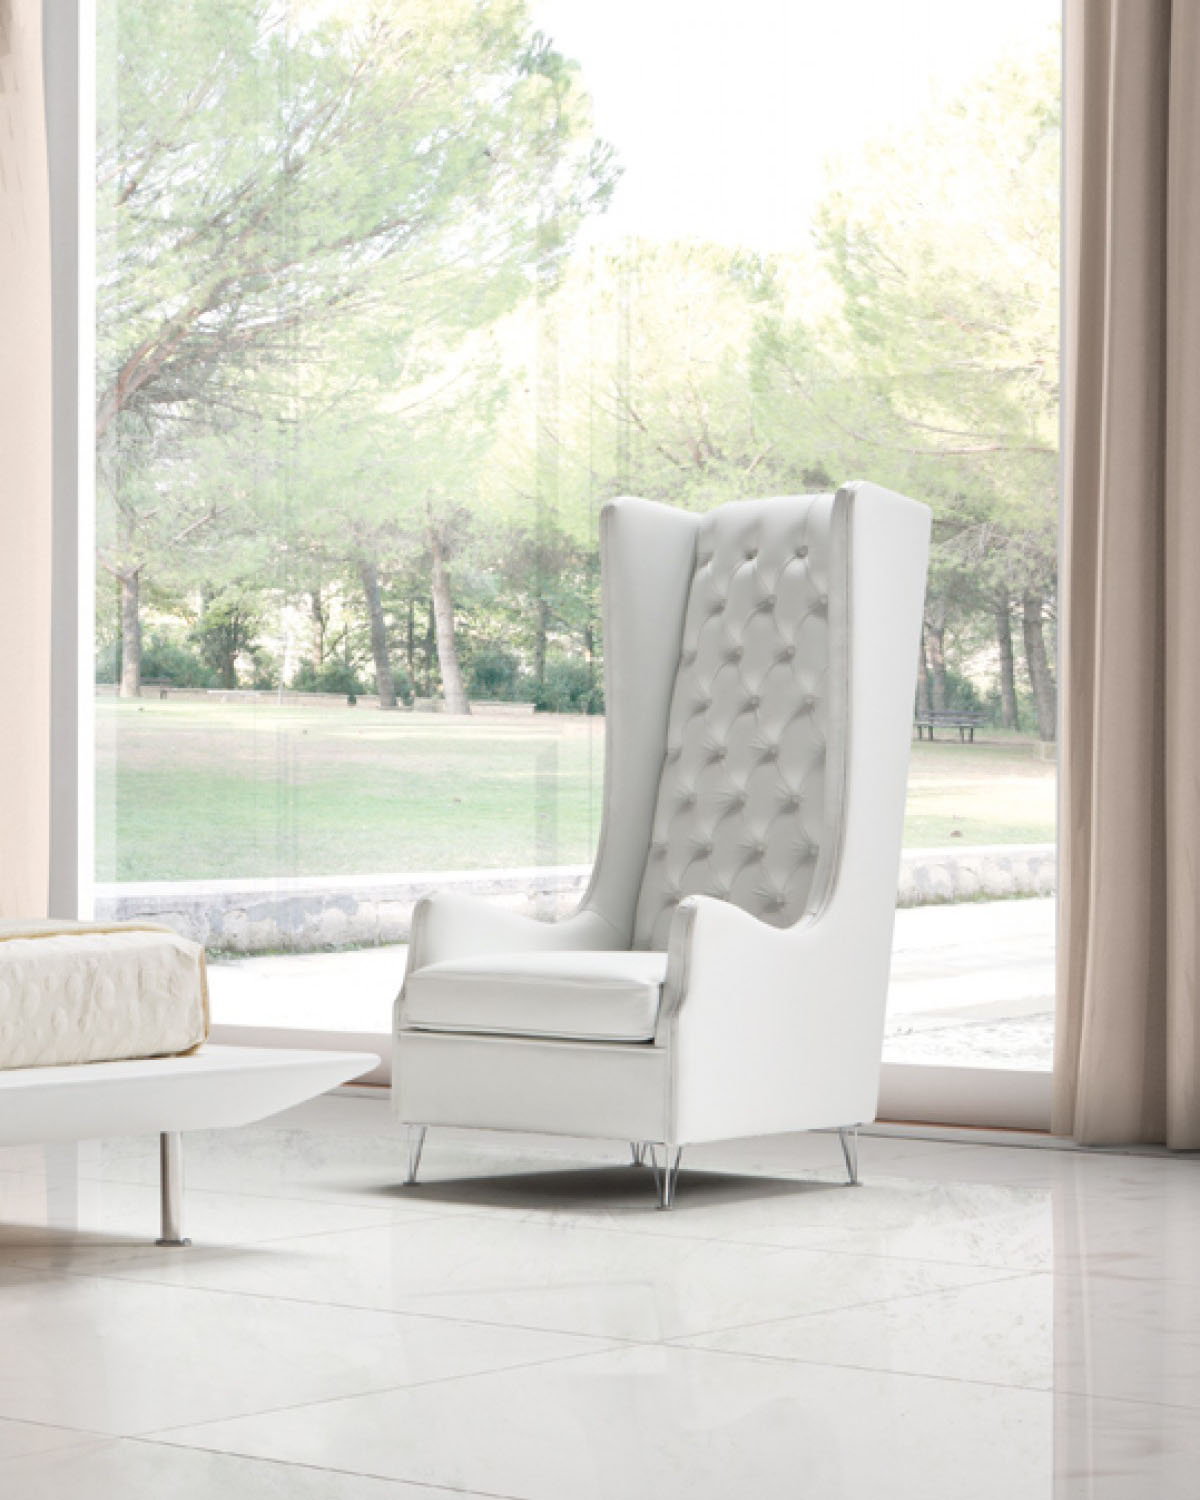 sofas in columbus ohio drew modern power recliner sofa tufted white leather italian made accent chair ...